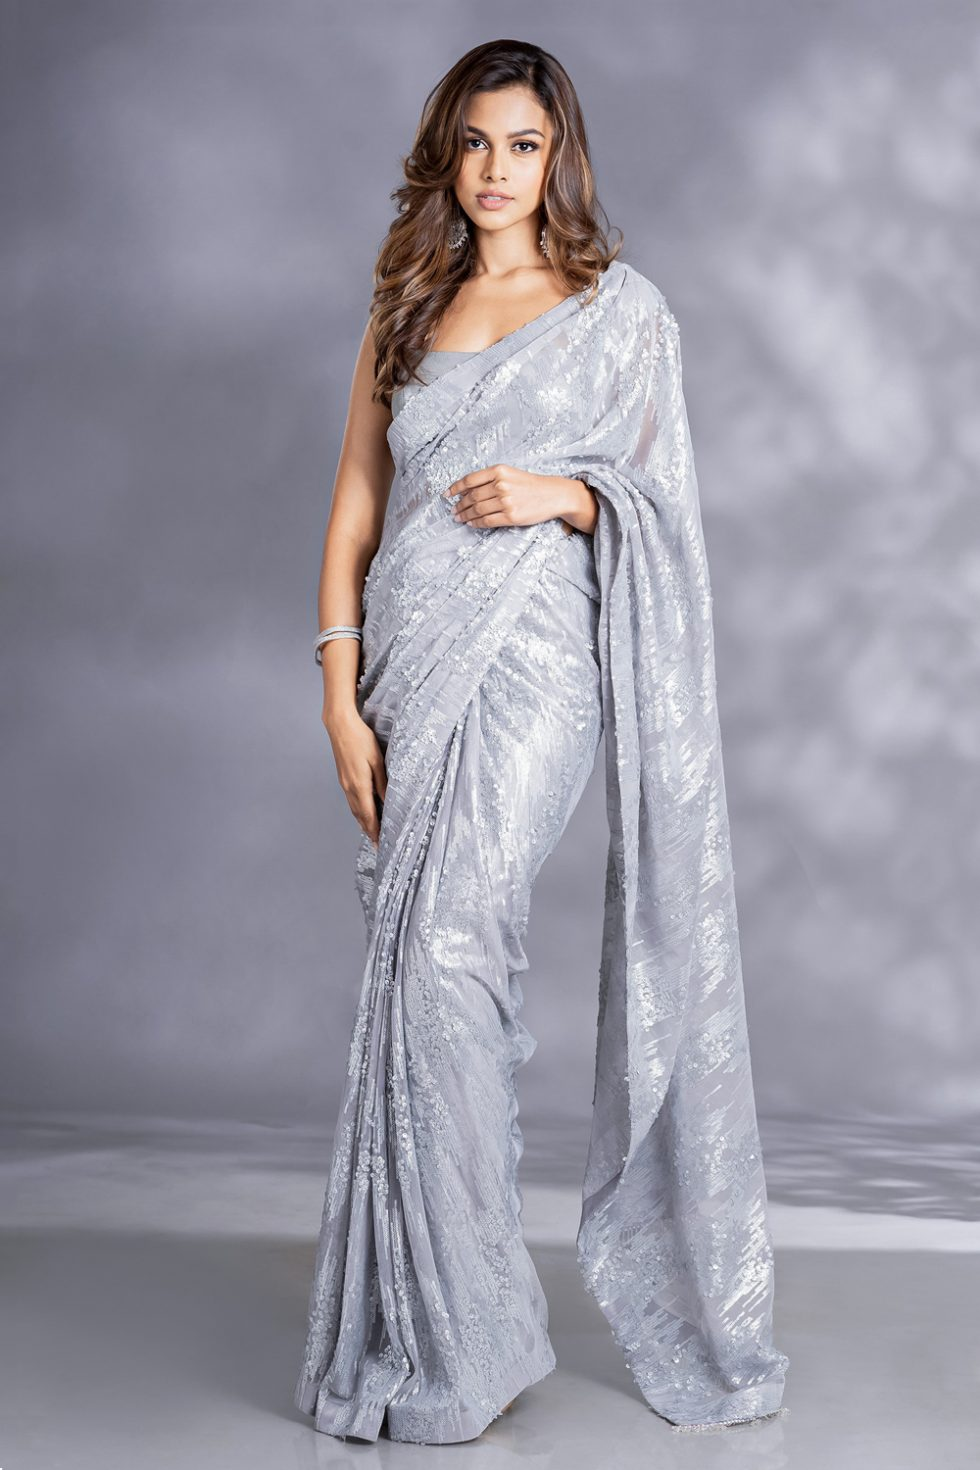 Steel grey classic saree with sequin work paired with a matching sequin classic blouse and silver tassels.